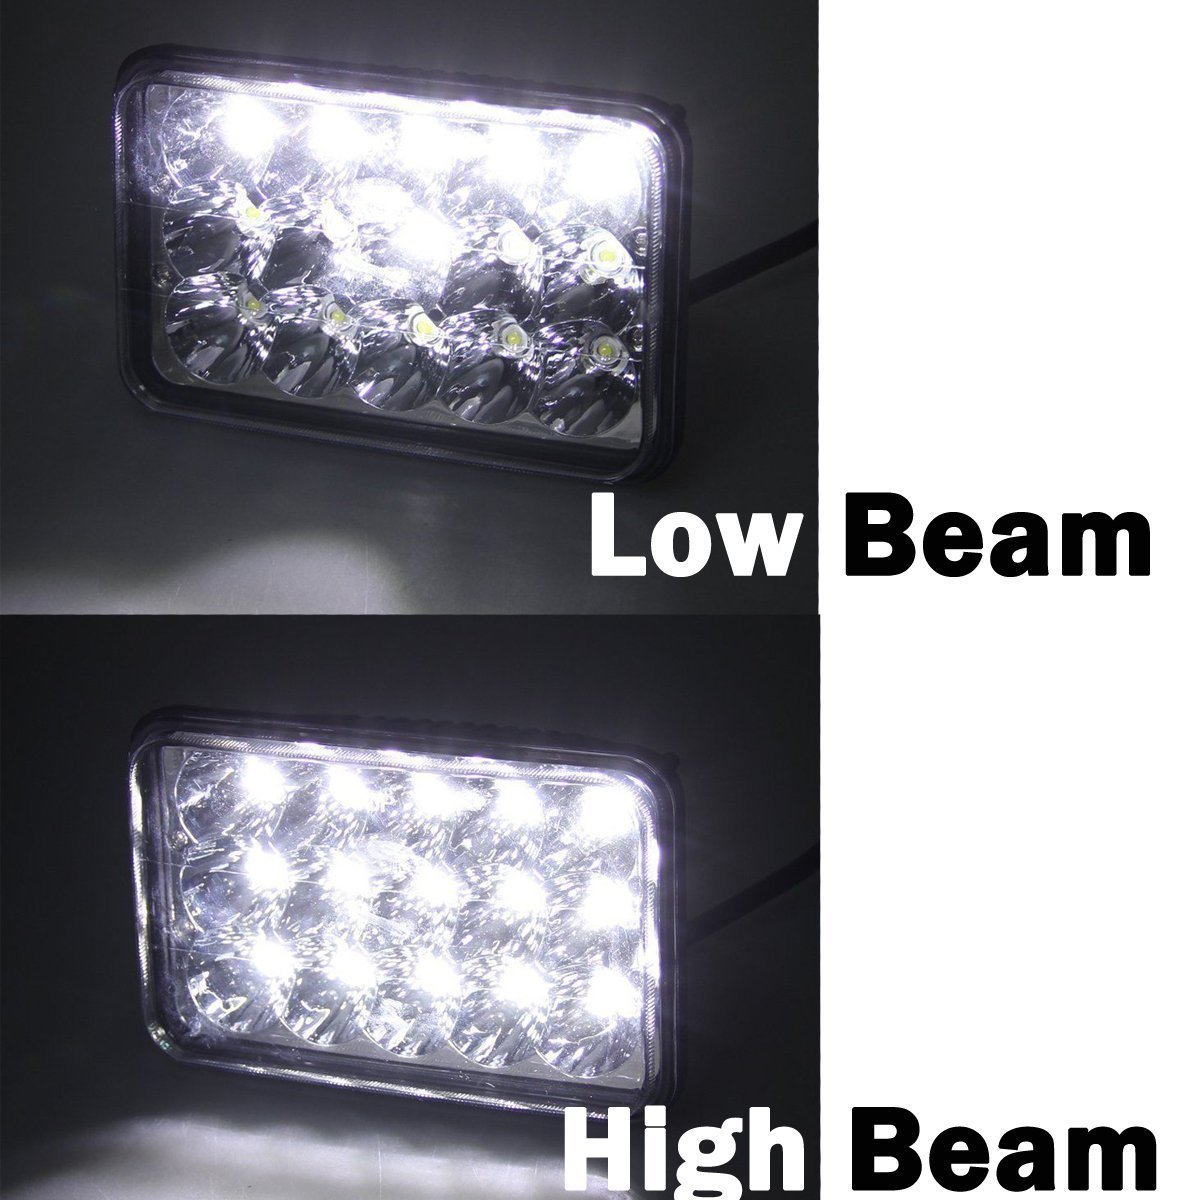 4x6 Led Headlights For Chevrolet Chevy C4500 C5500 1995 Kodiak C8500 Wiring Diagram Rectangular High Low Sealed Beam Bright Lights To Replace H4651 H4652 H4656 H4666